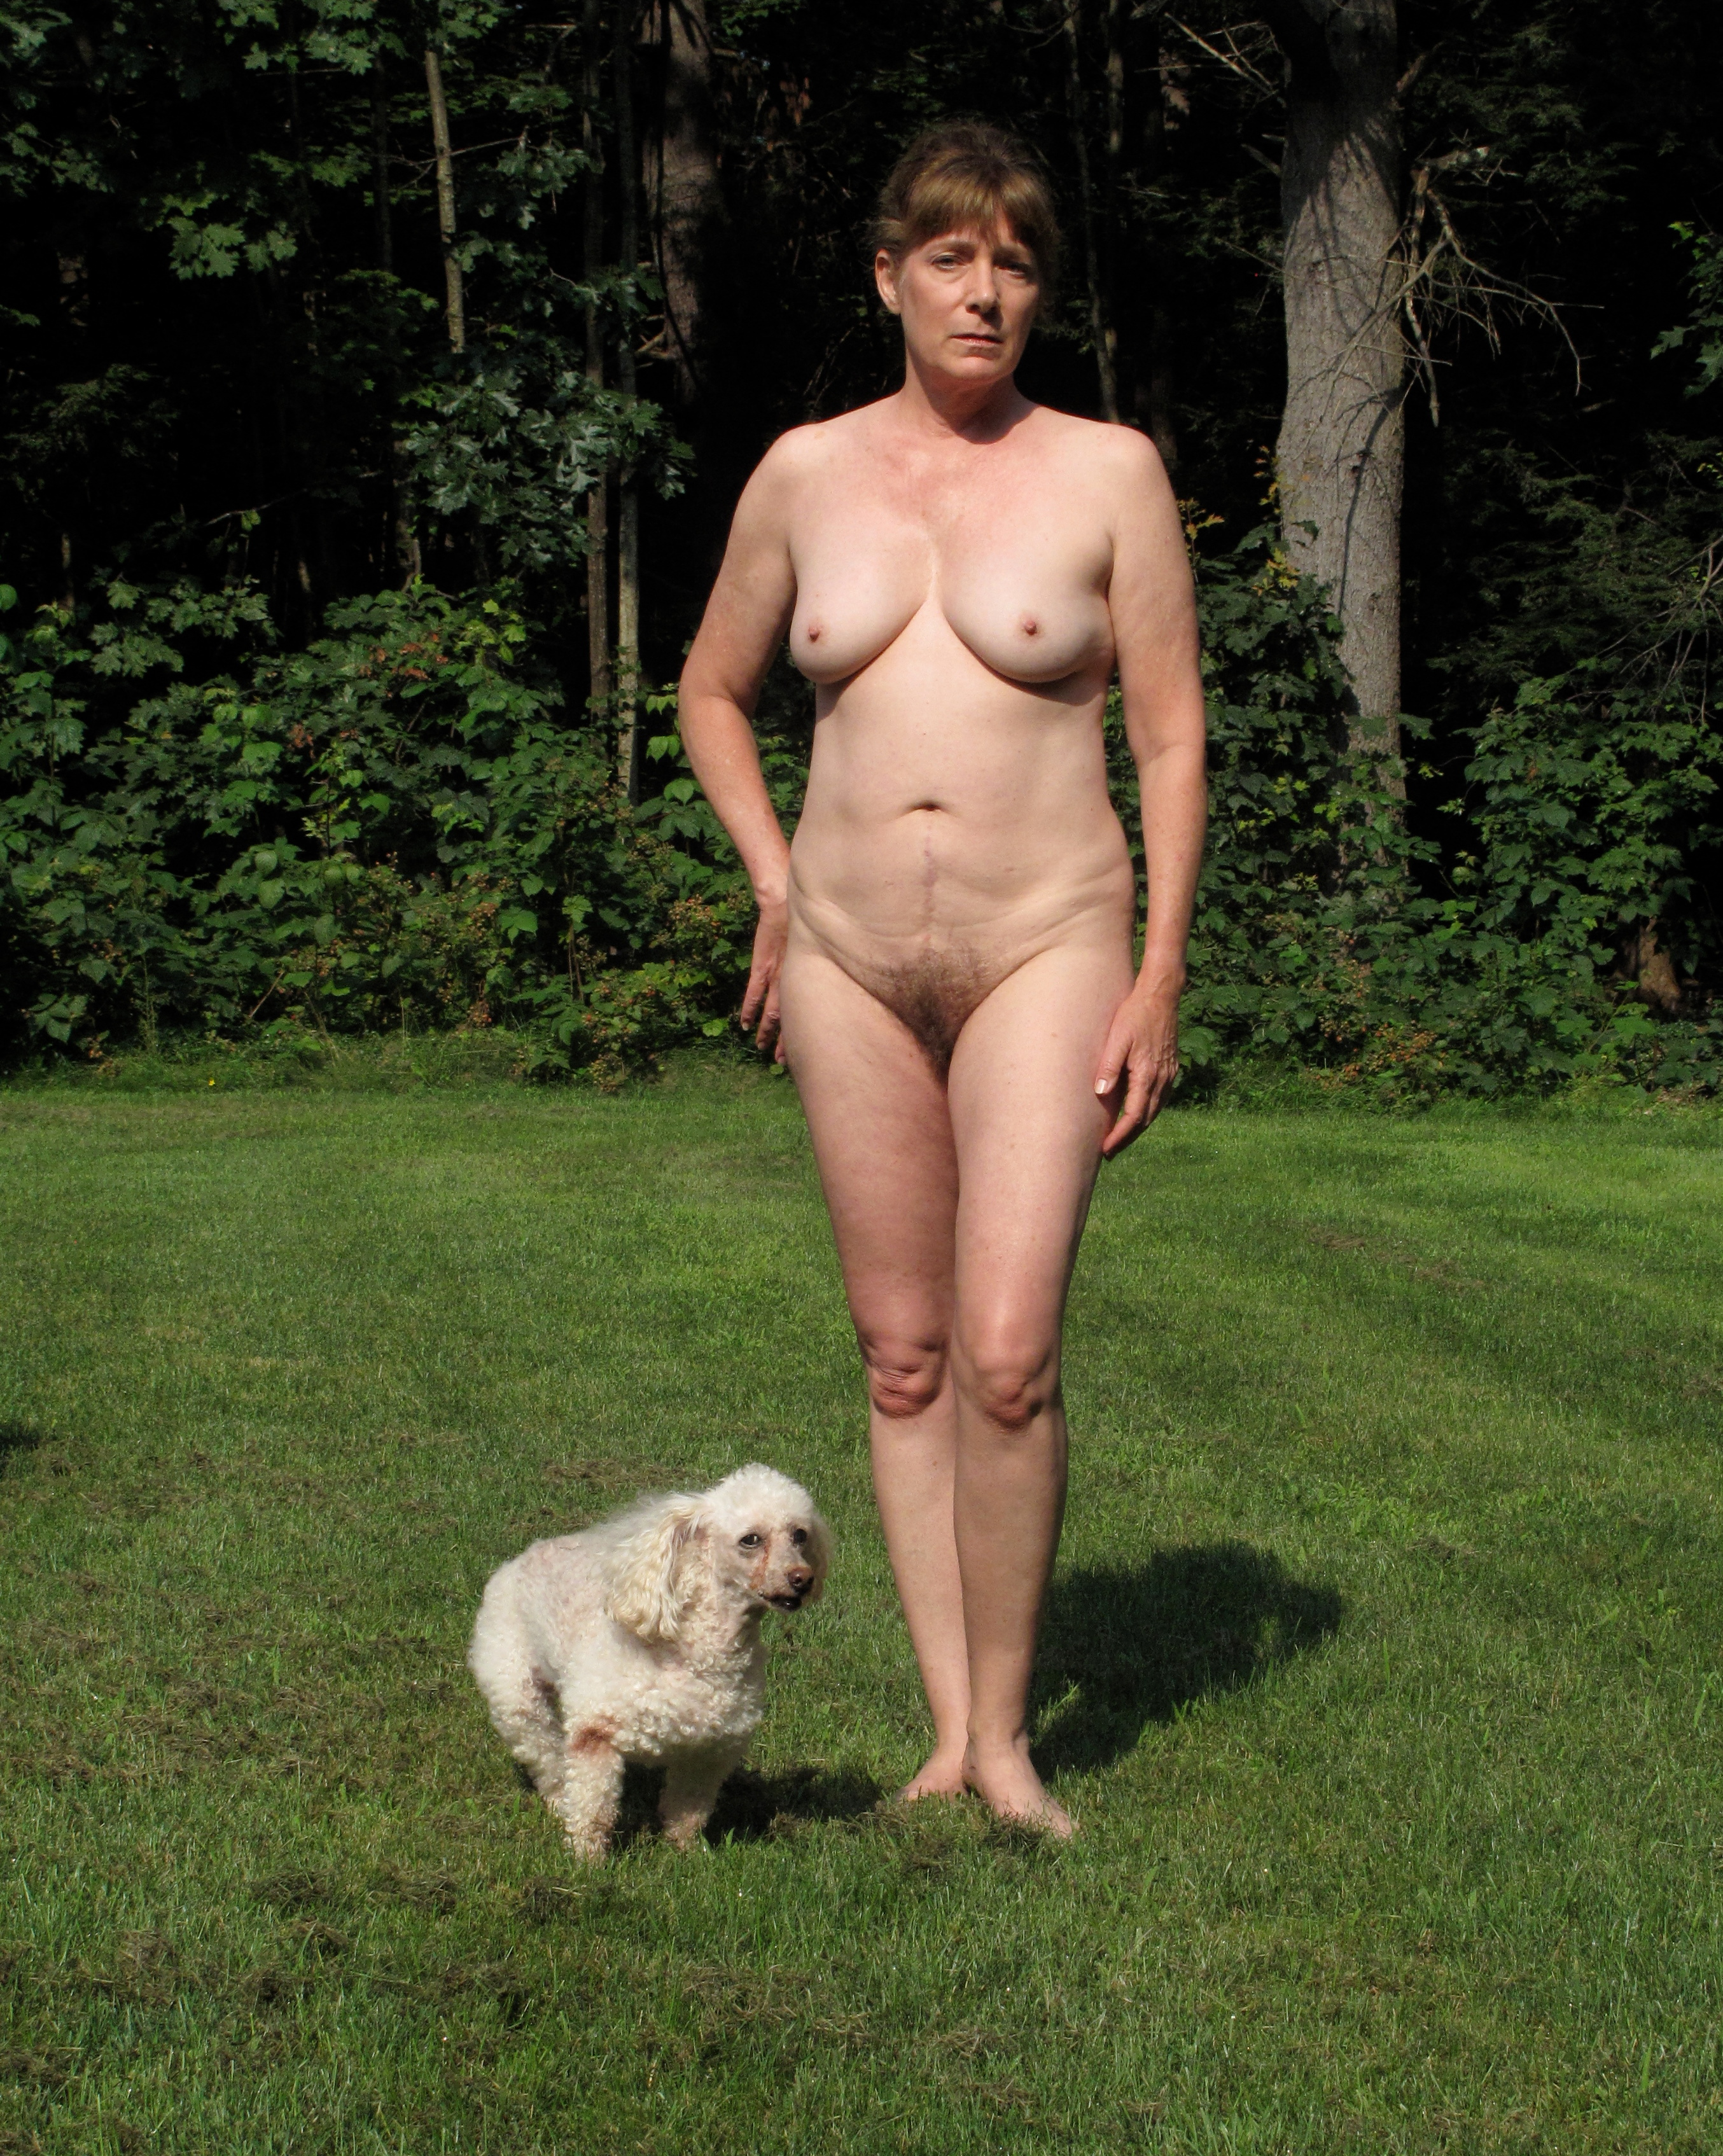 Naked woman in her backyard with dog